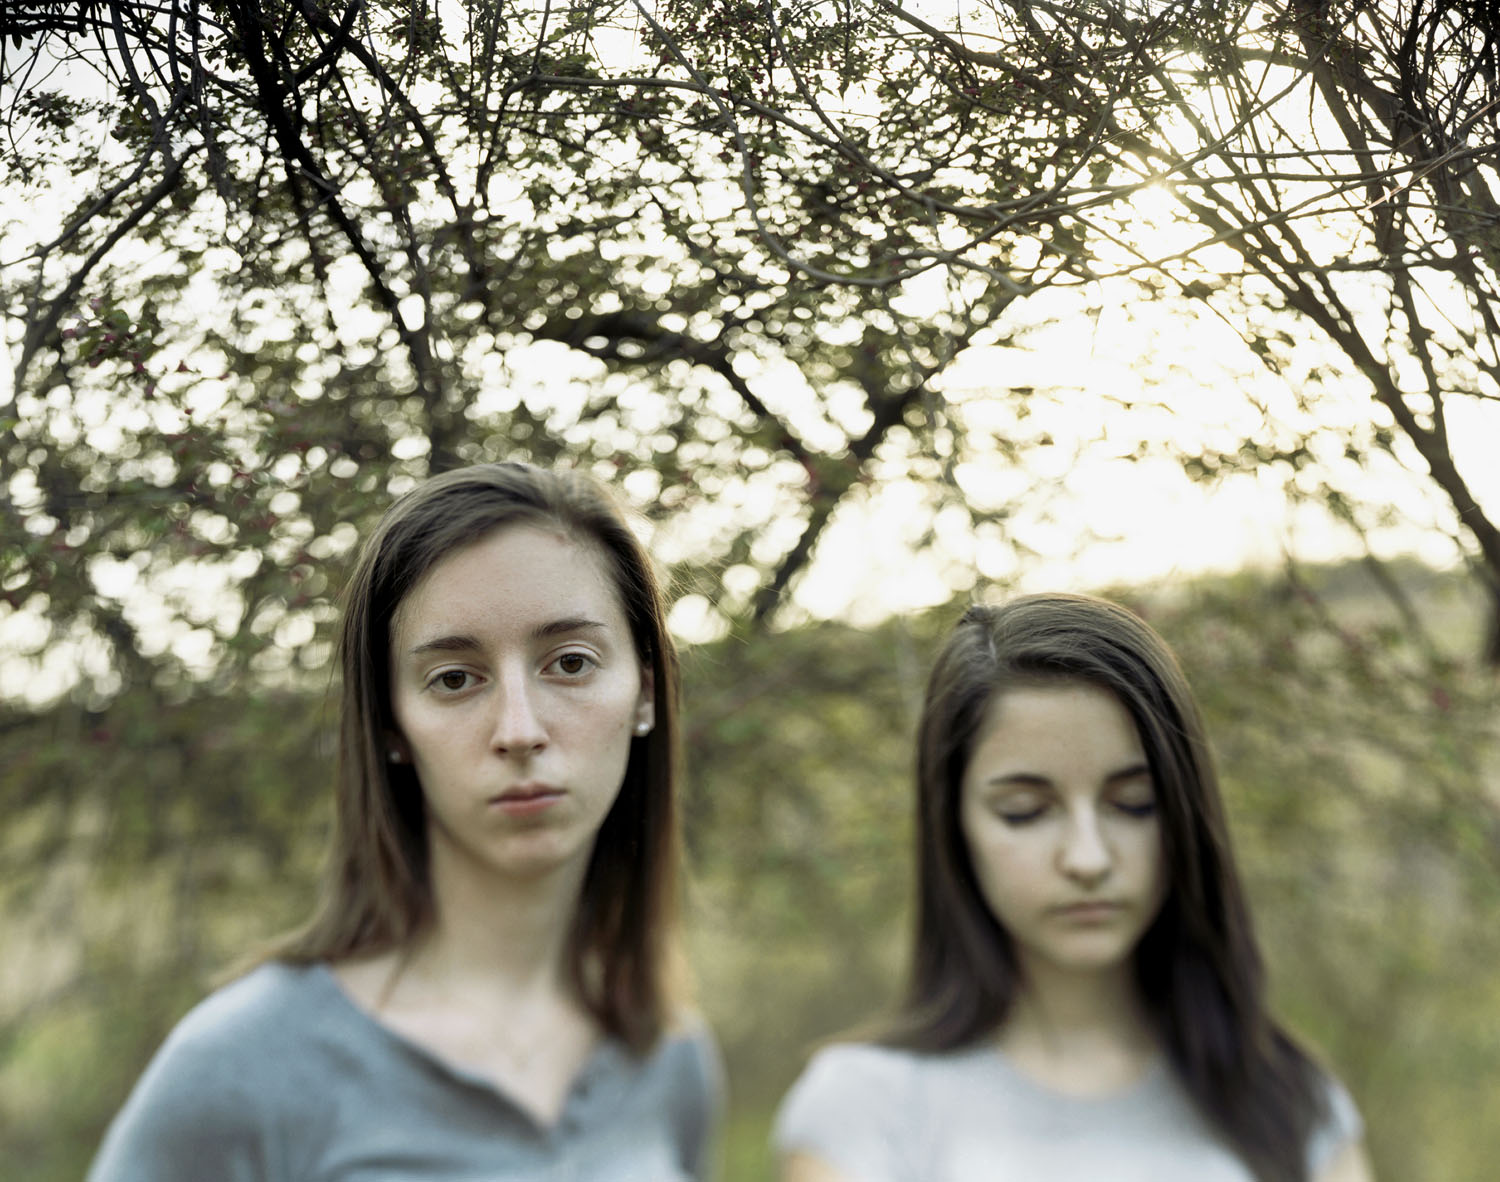 aimee lubczanski and her sister